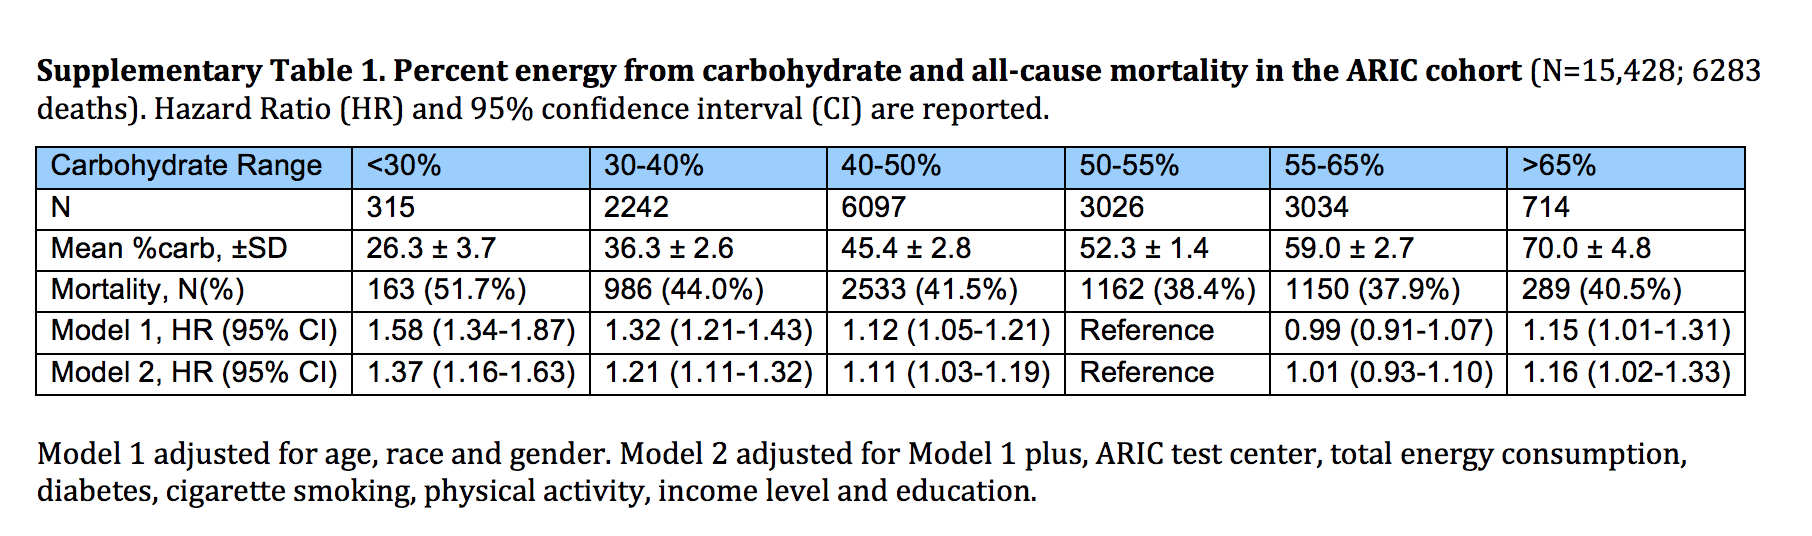 Table stratifying carbohydrate intake by percentage and the correspondoing hazard ratios.